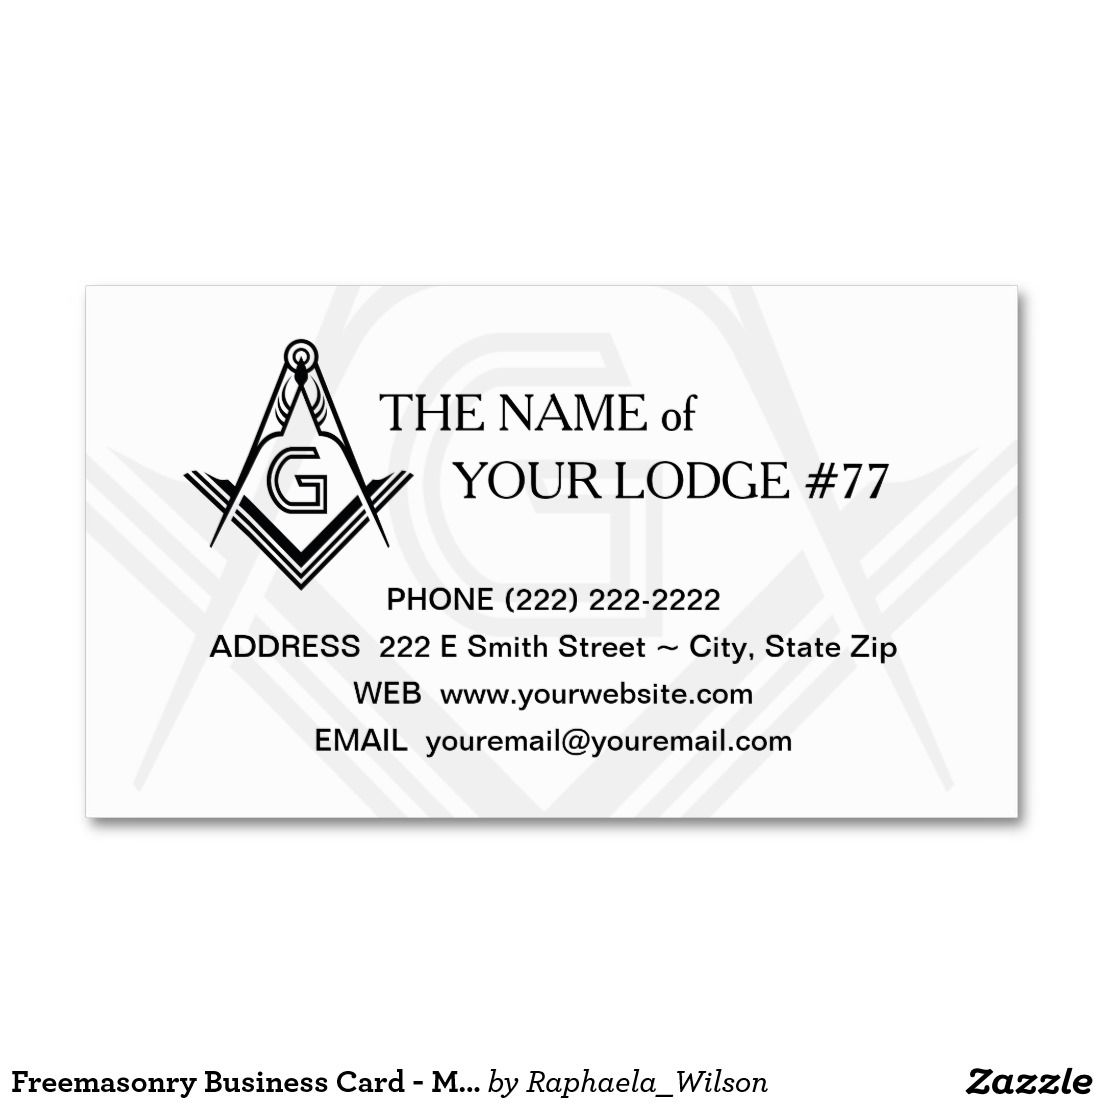 Masonic Business Card Template | Black and White | Business cards ...